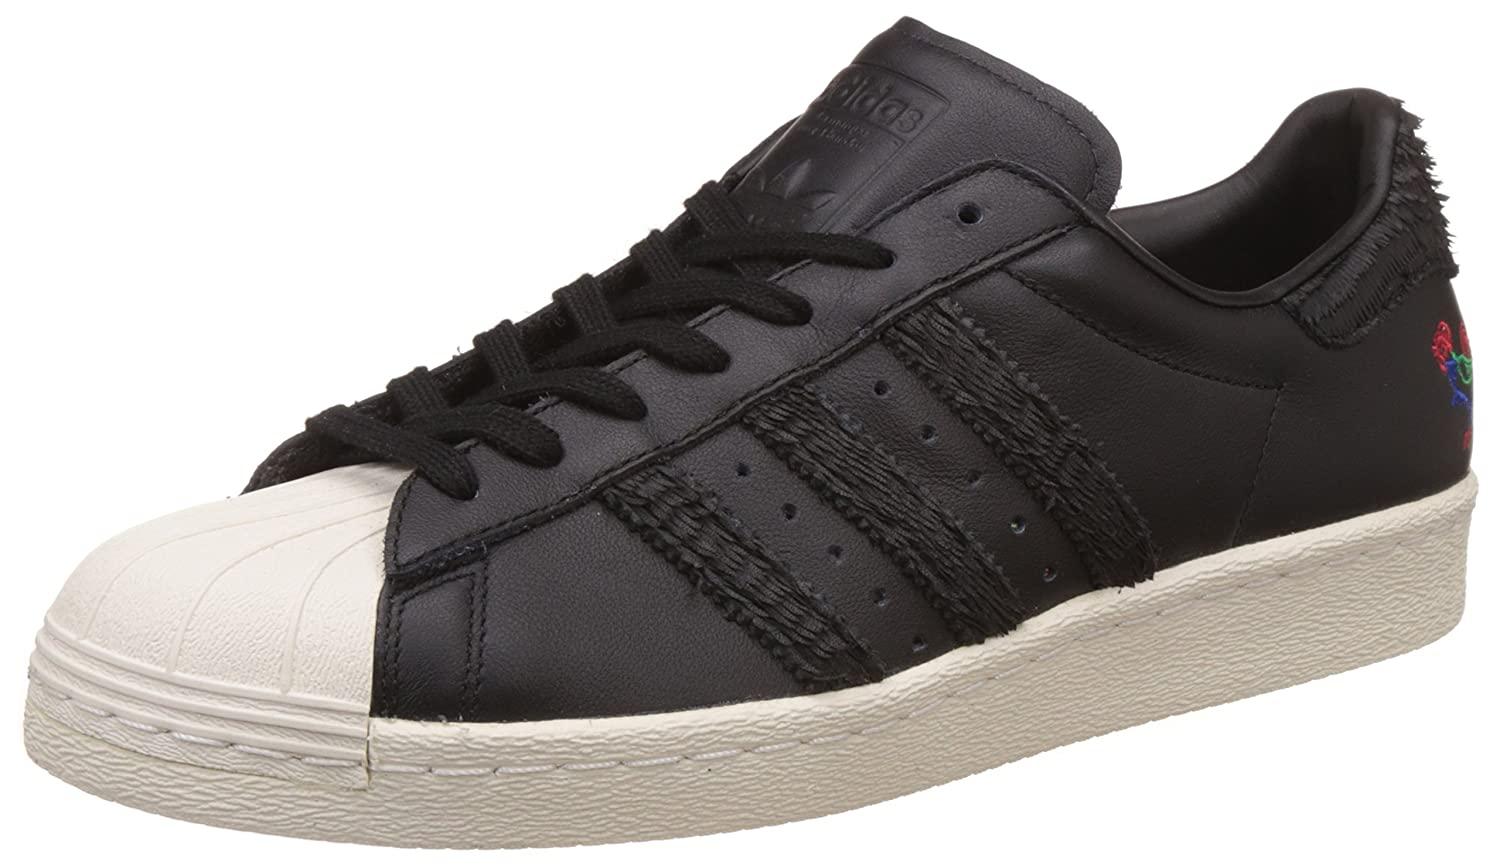 adidas Originals Men's Superstar 80S Cny Cblack and Cwhite Leather Sneakers  - 11 UK/India (46 EU): Buy Online at Low Prices in India - Amazon.in